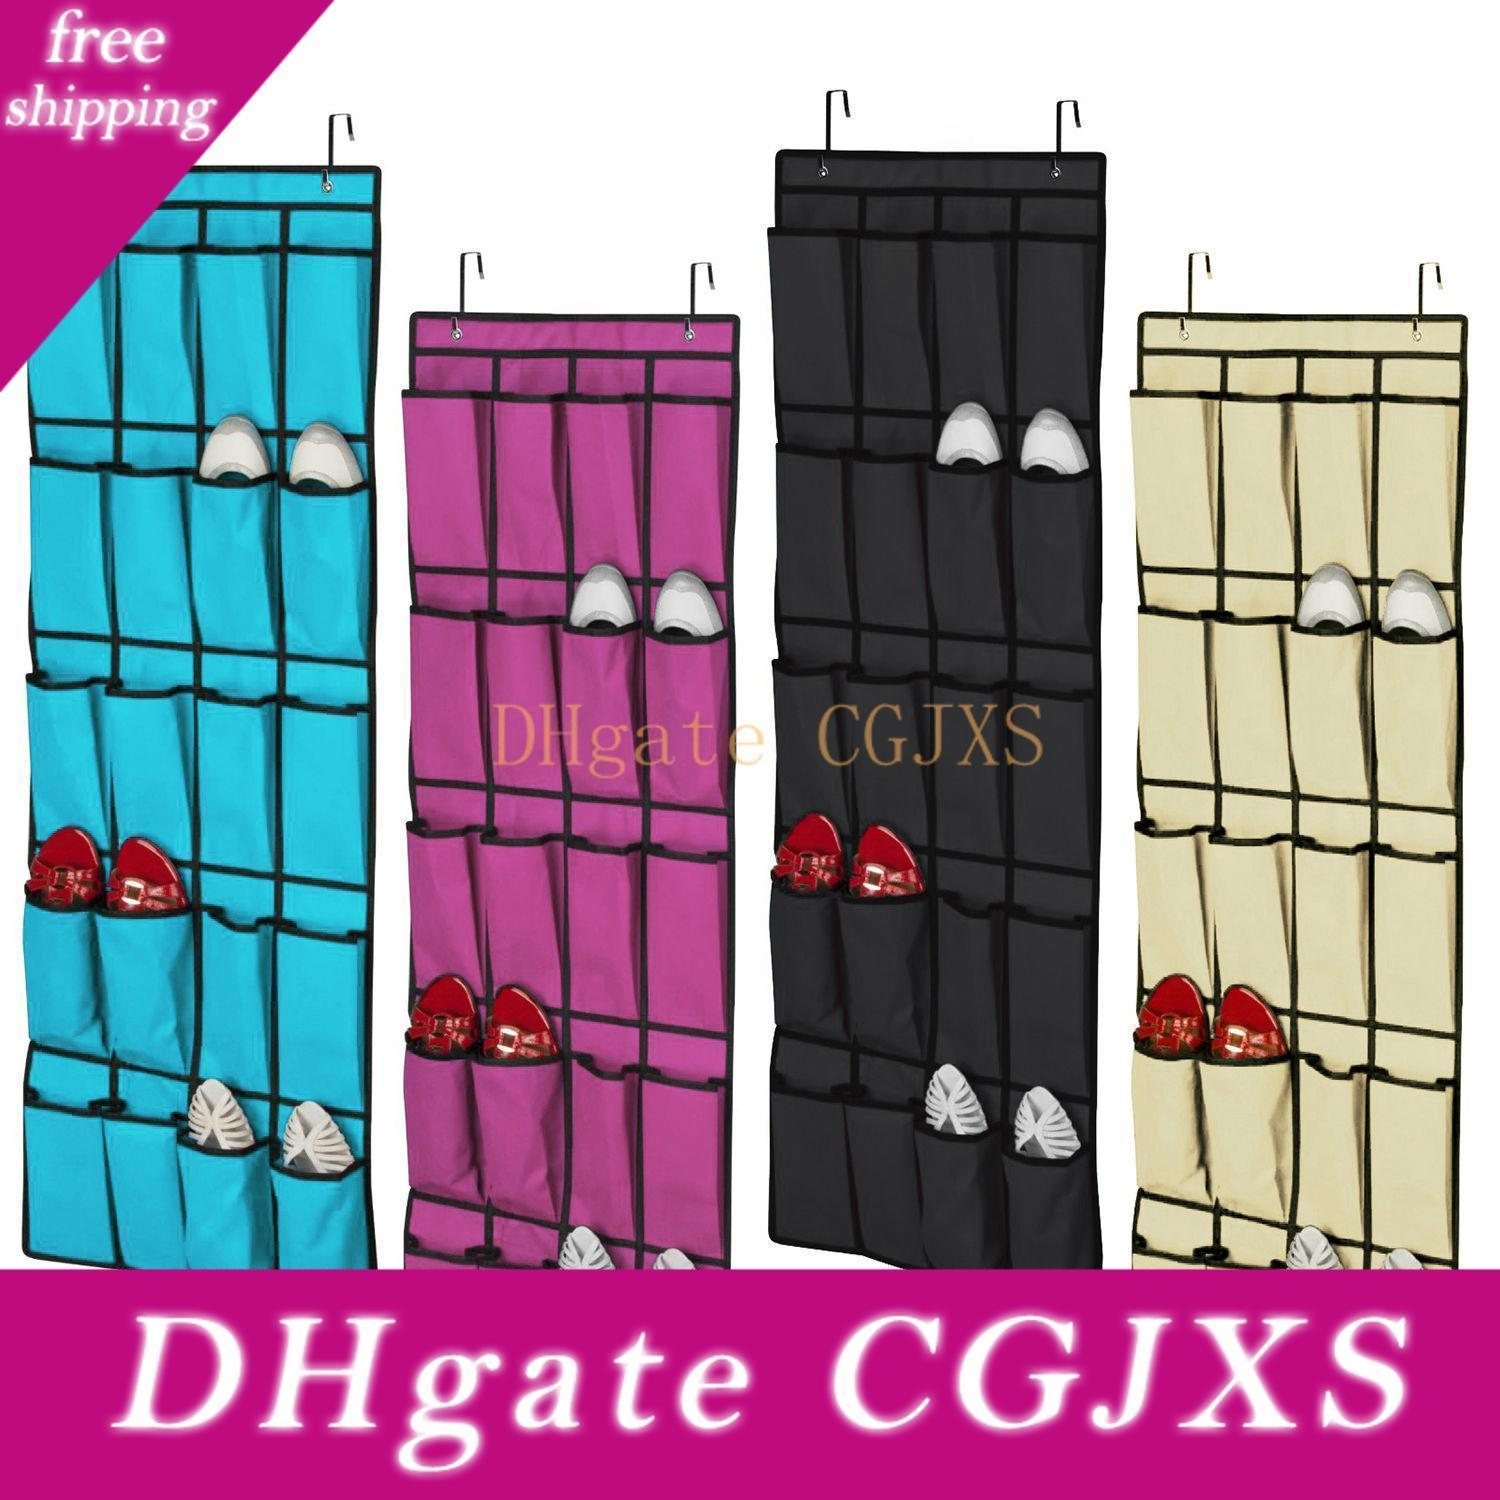 Wholesale Storage Over Door Organizers On Halloween Buy Cheap In Bulk From China Suppliers With Coupon Dhgate Com